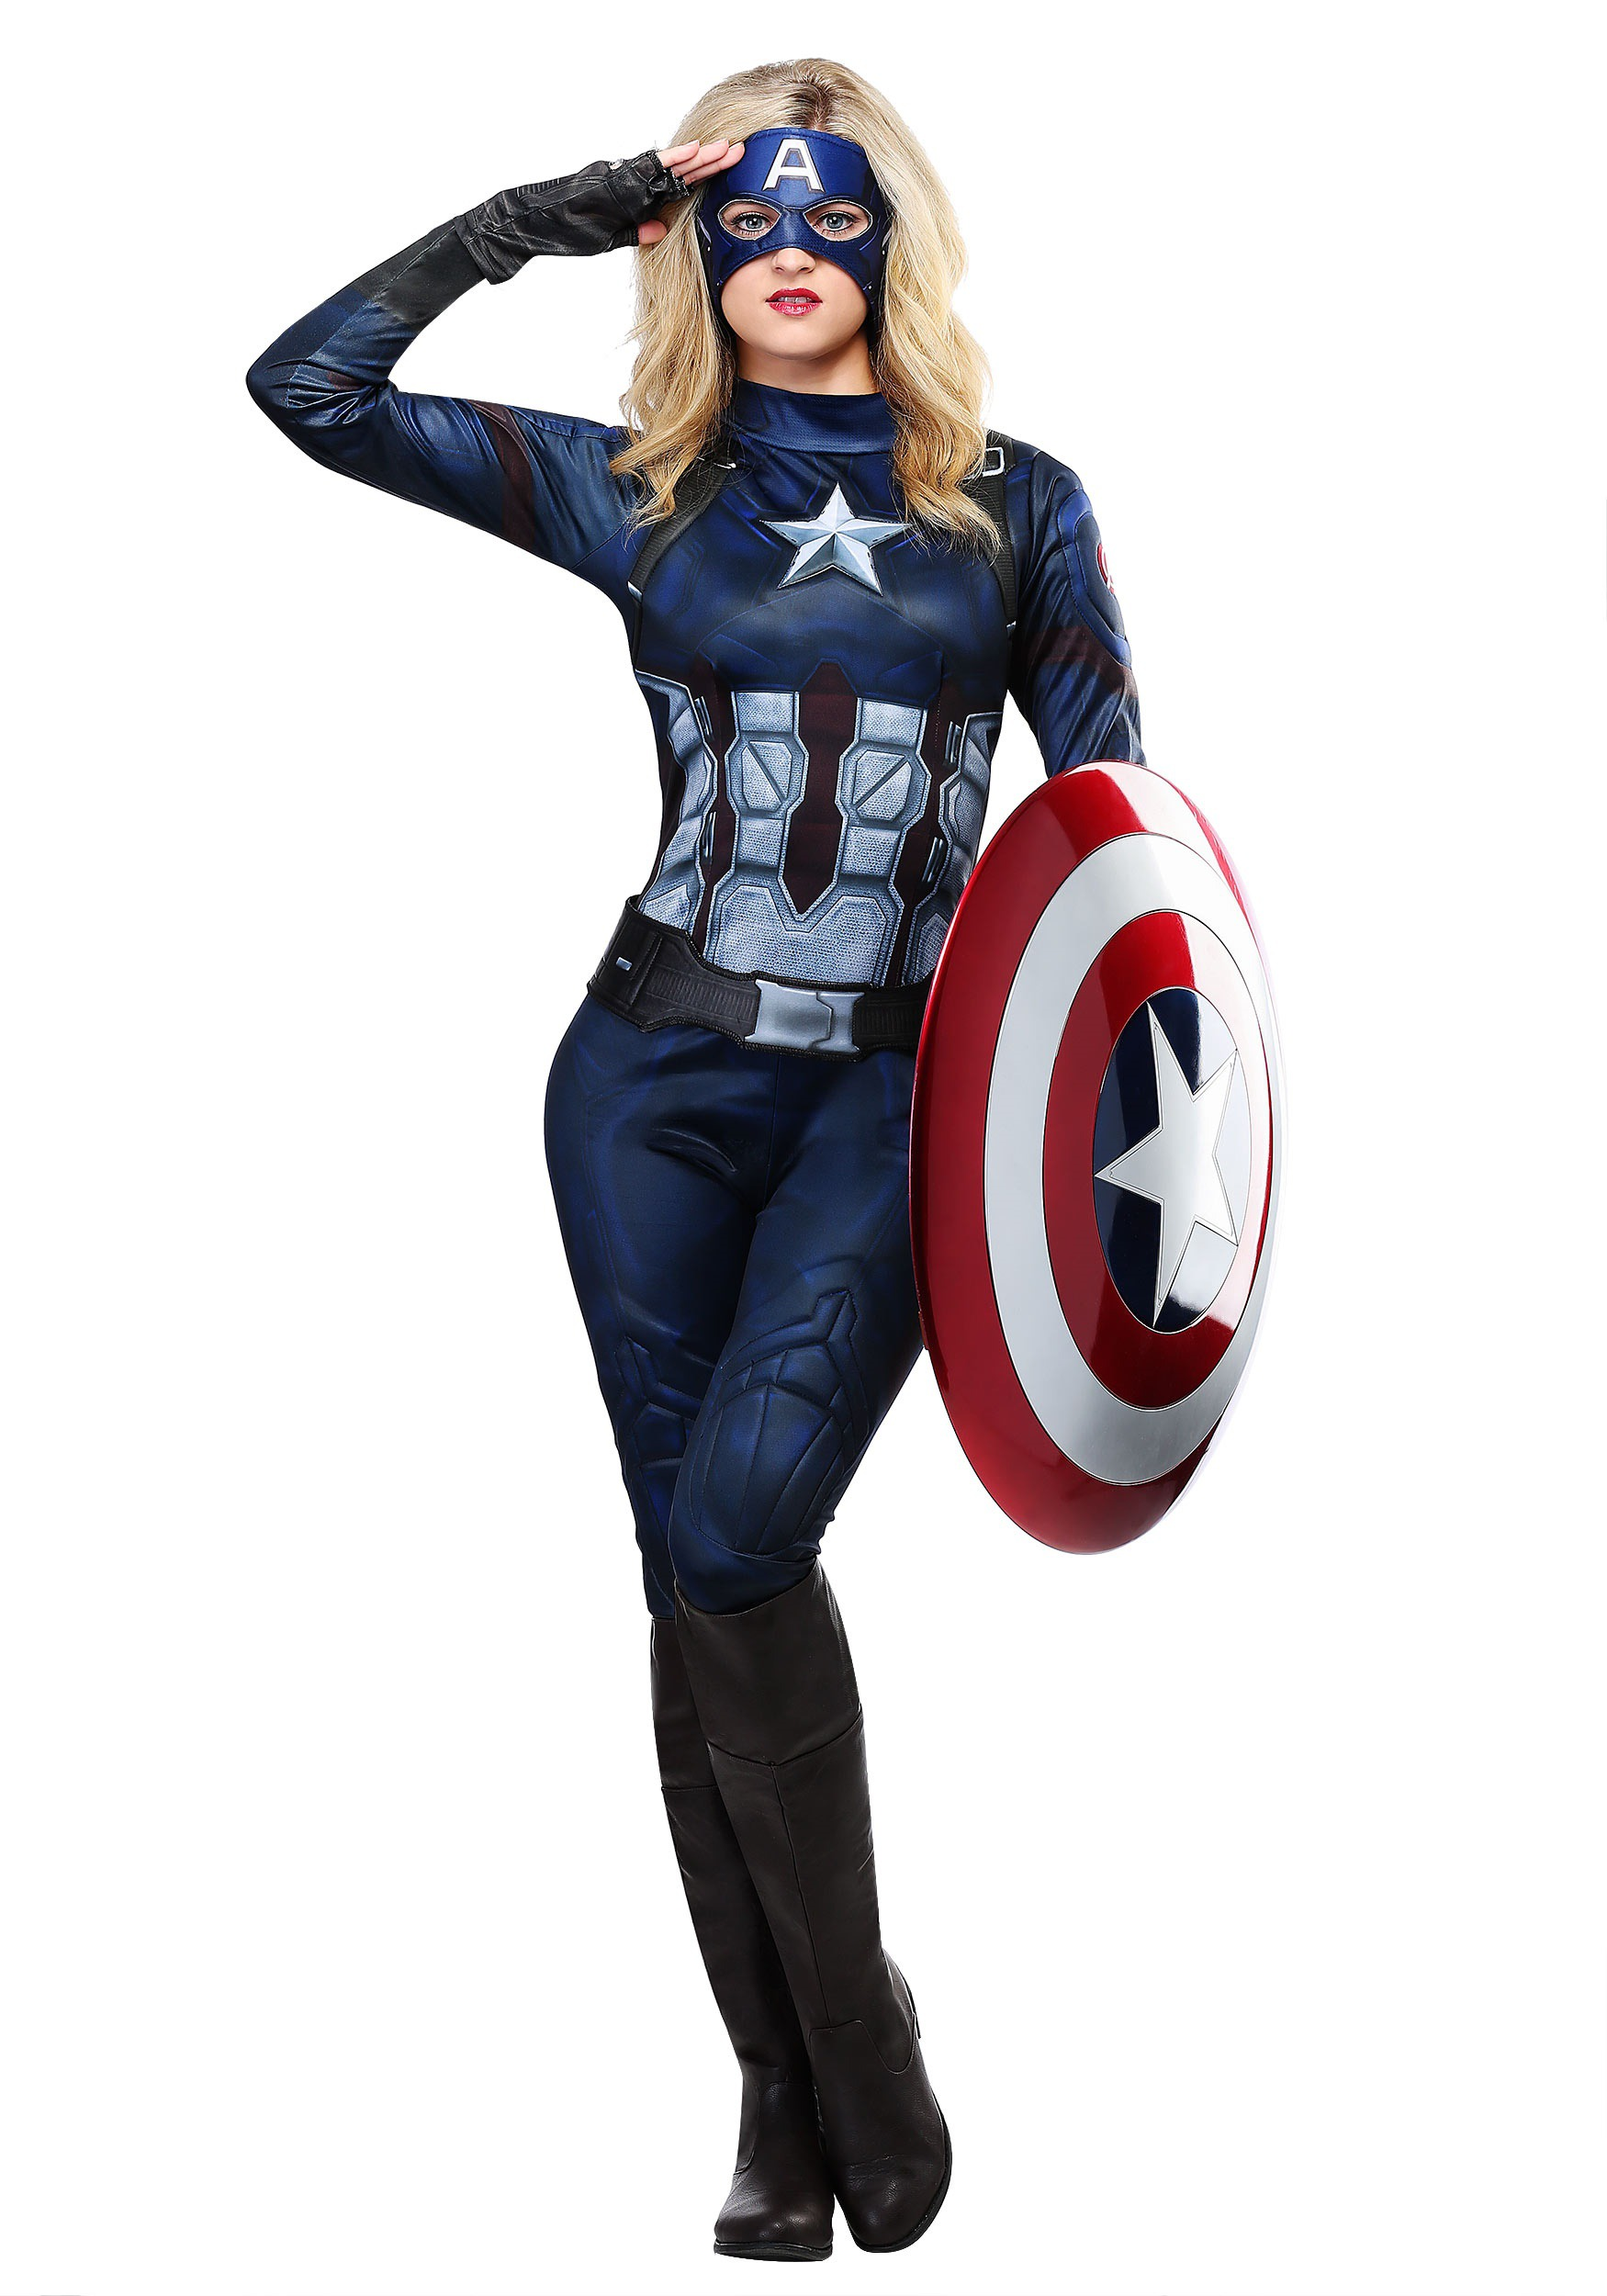 Marvel Halloween Costumes Diy.Superhero Costumes For Women Female Superhero Costumes